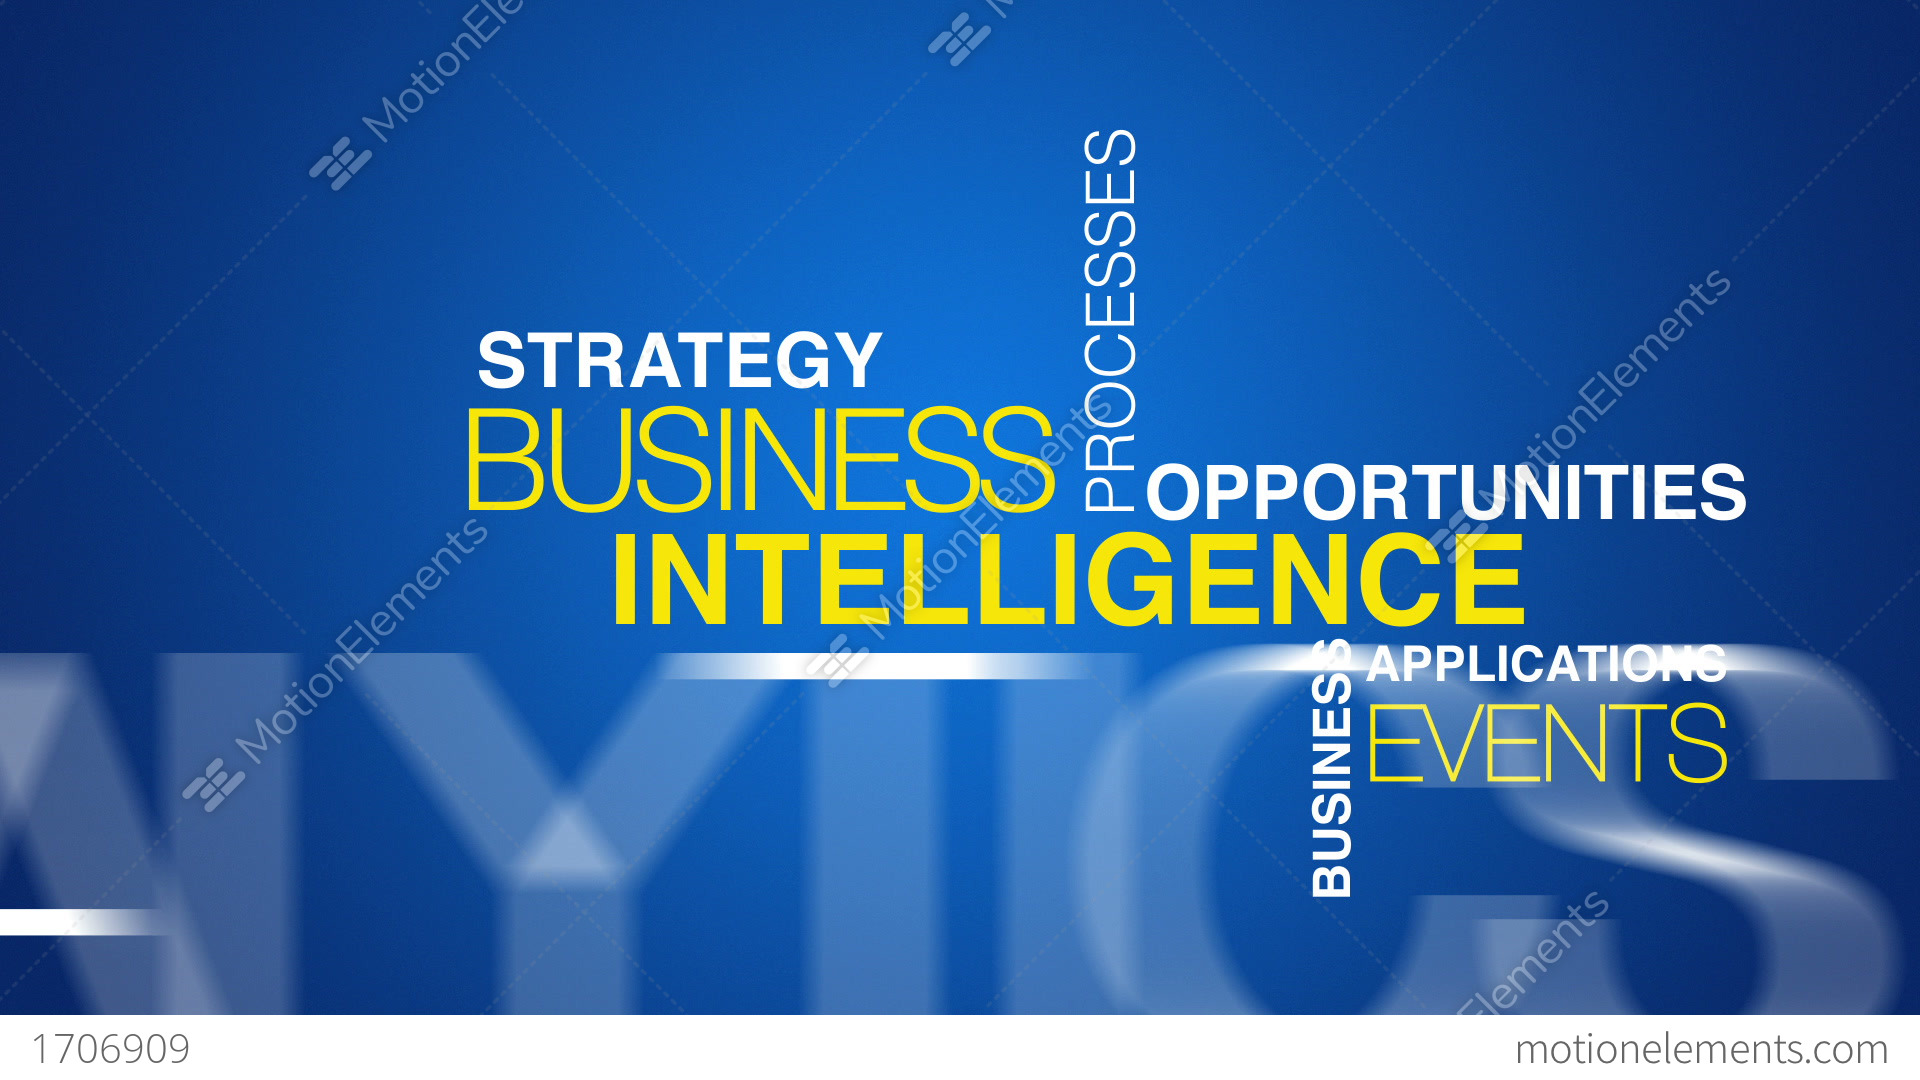 cloud business intelligence Our cloud business intelligence pricing makes your life easier there are no sneaky tricks or traps, just a simple pay-as-you-go monthly subscription.